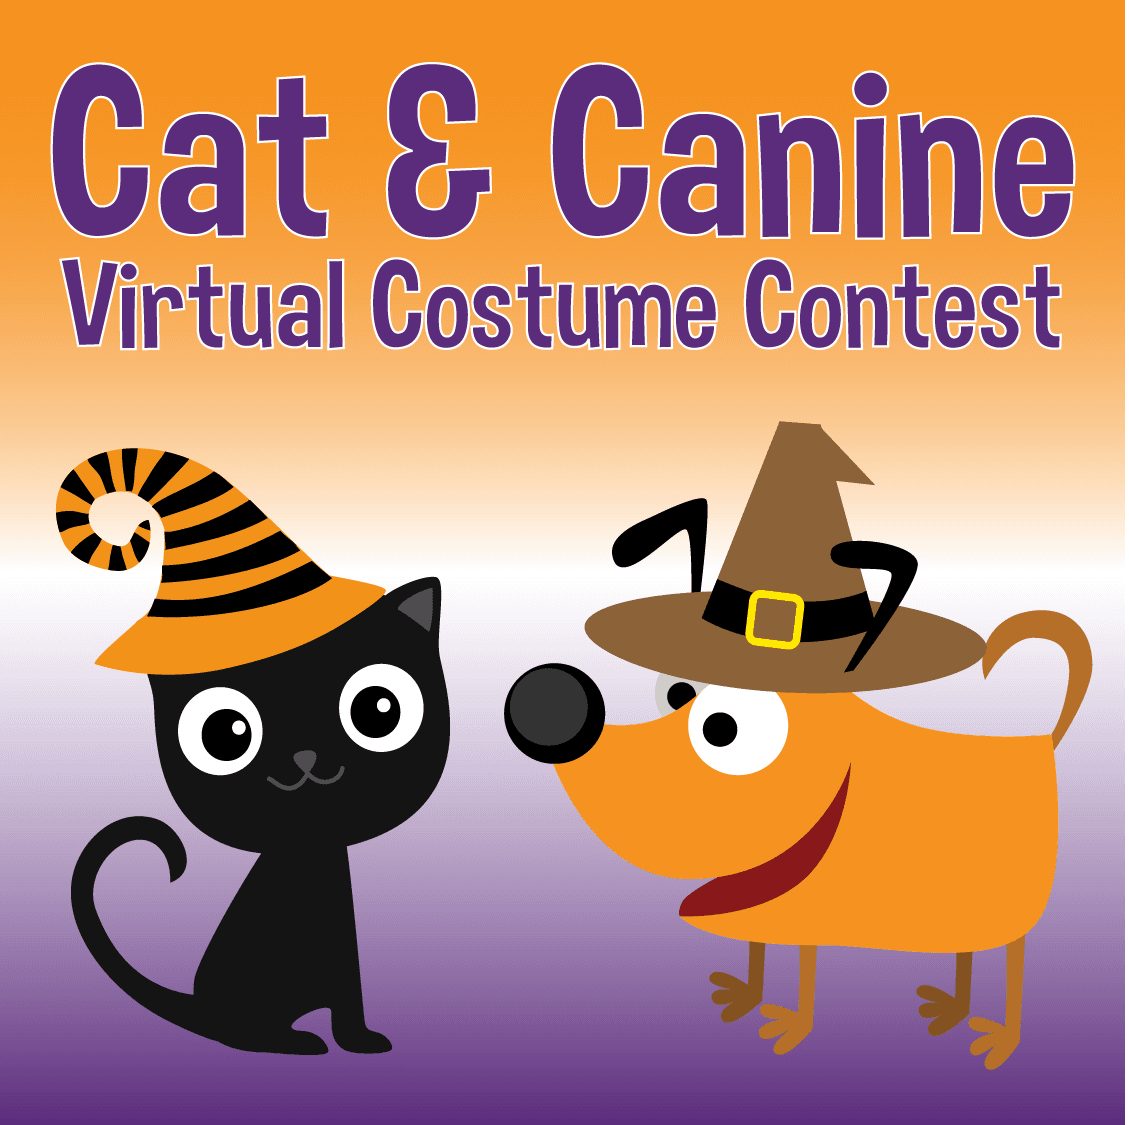 Cat & Canine Virtual Costume Contest